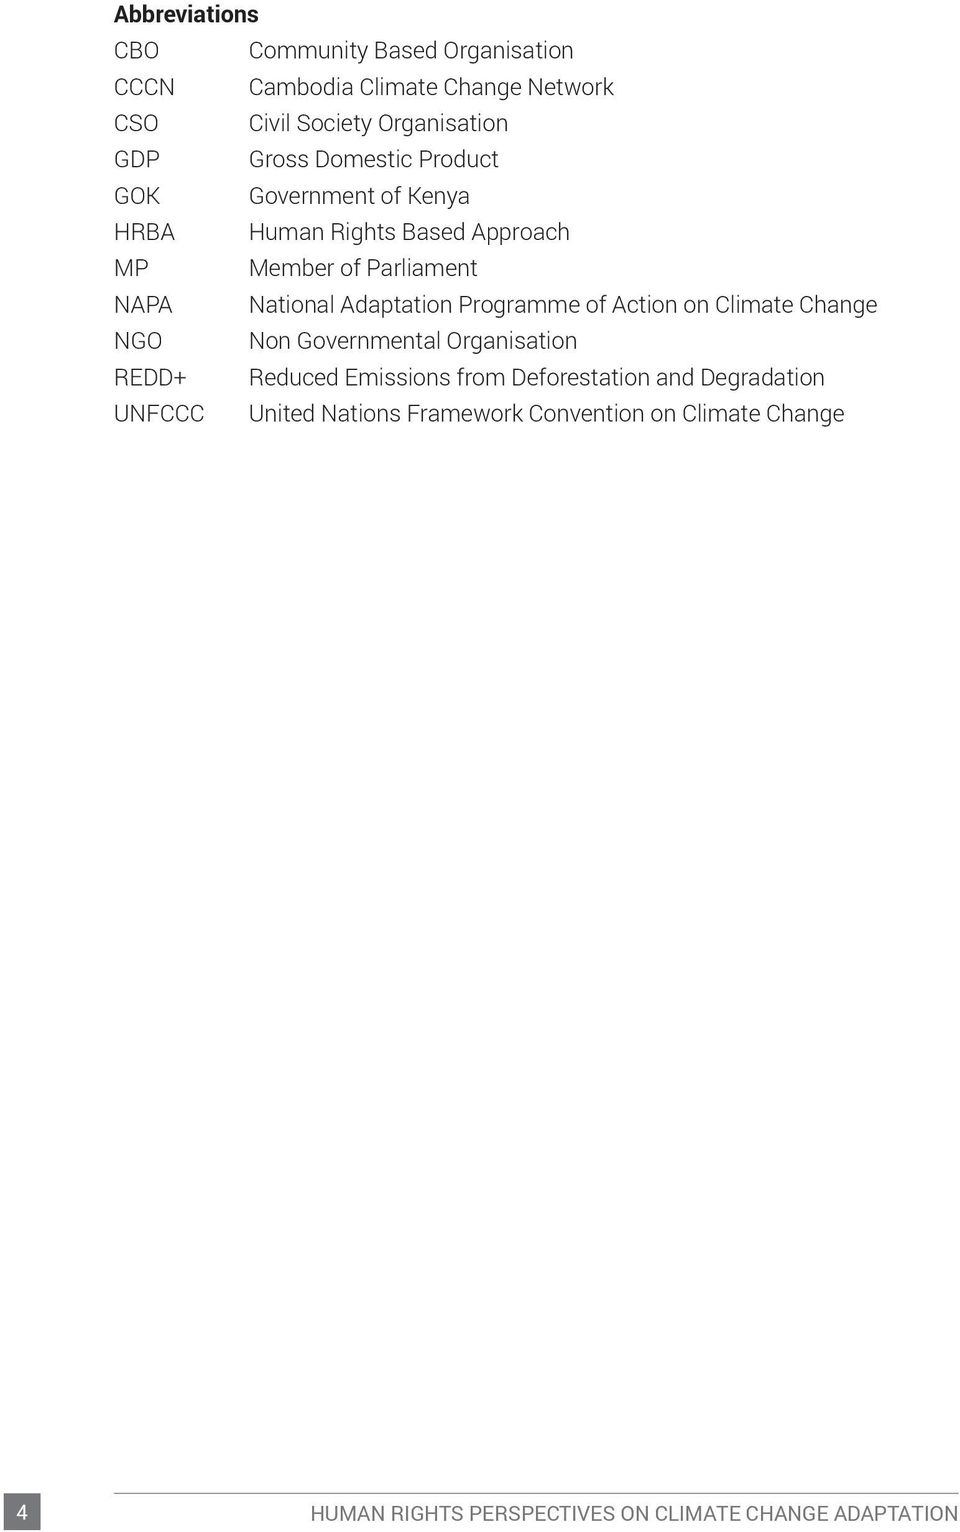 Adaptation Programme of Action on Climate Change NGO Non Governmental Organisation REDD+ Reduced Emissions from